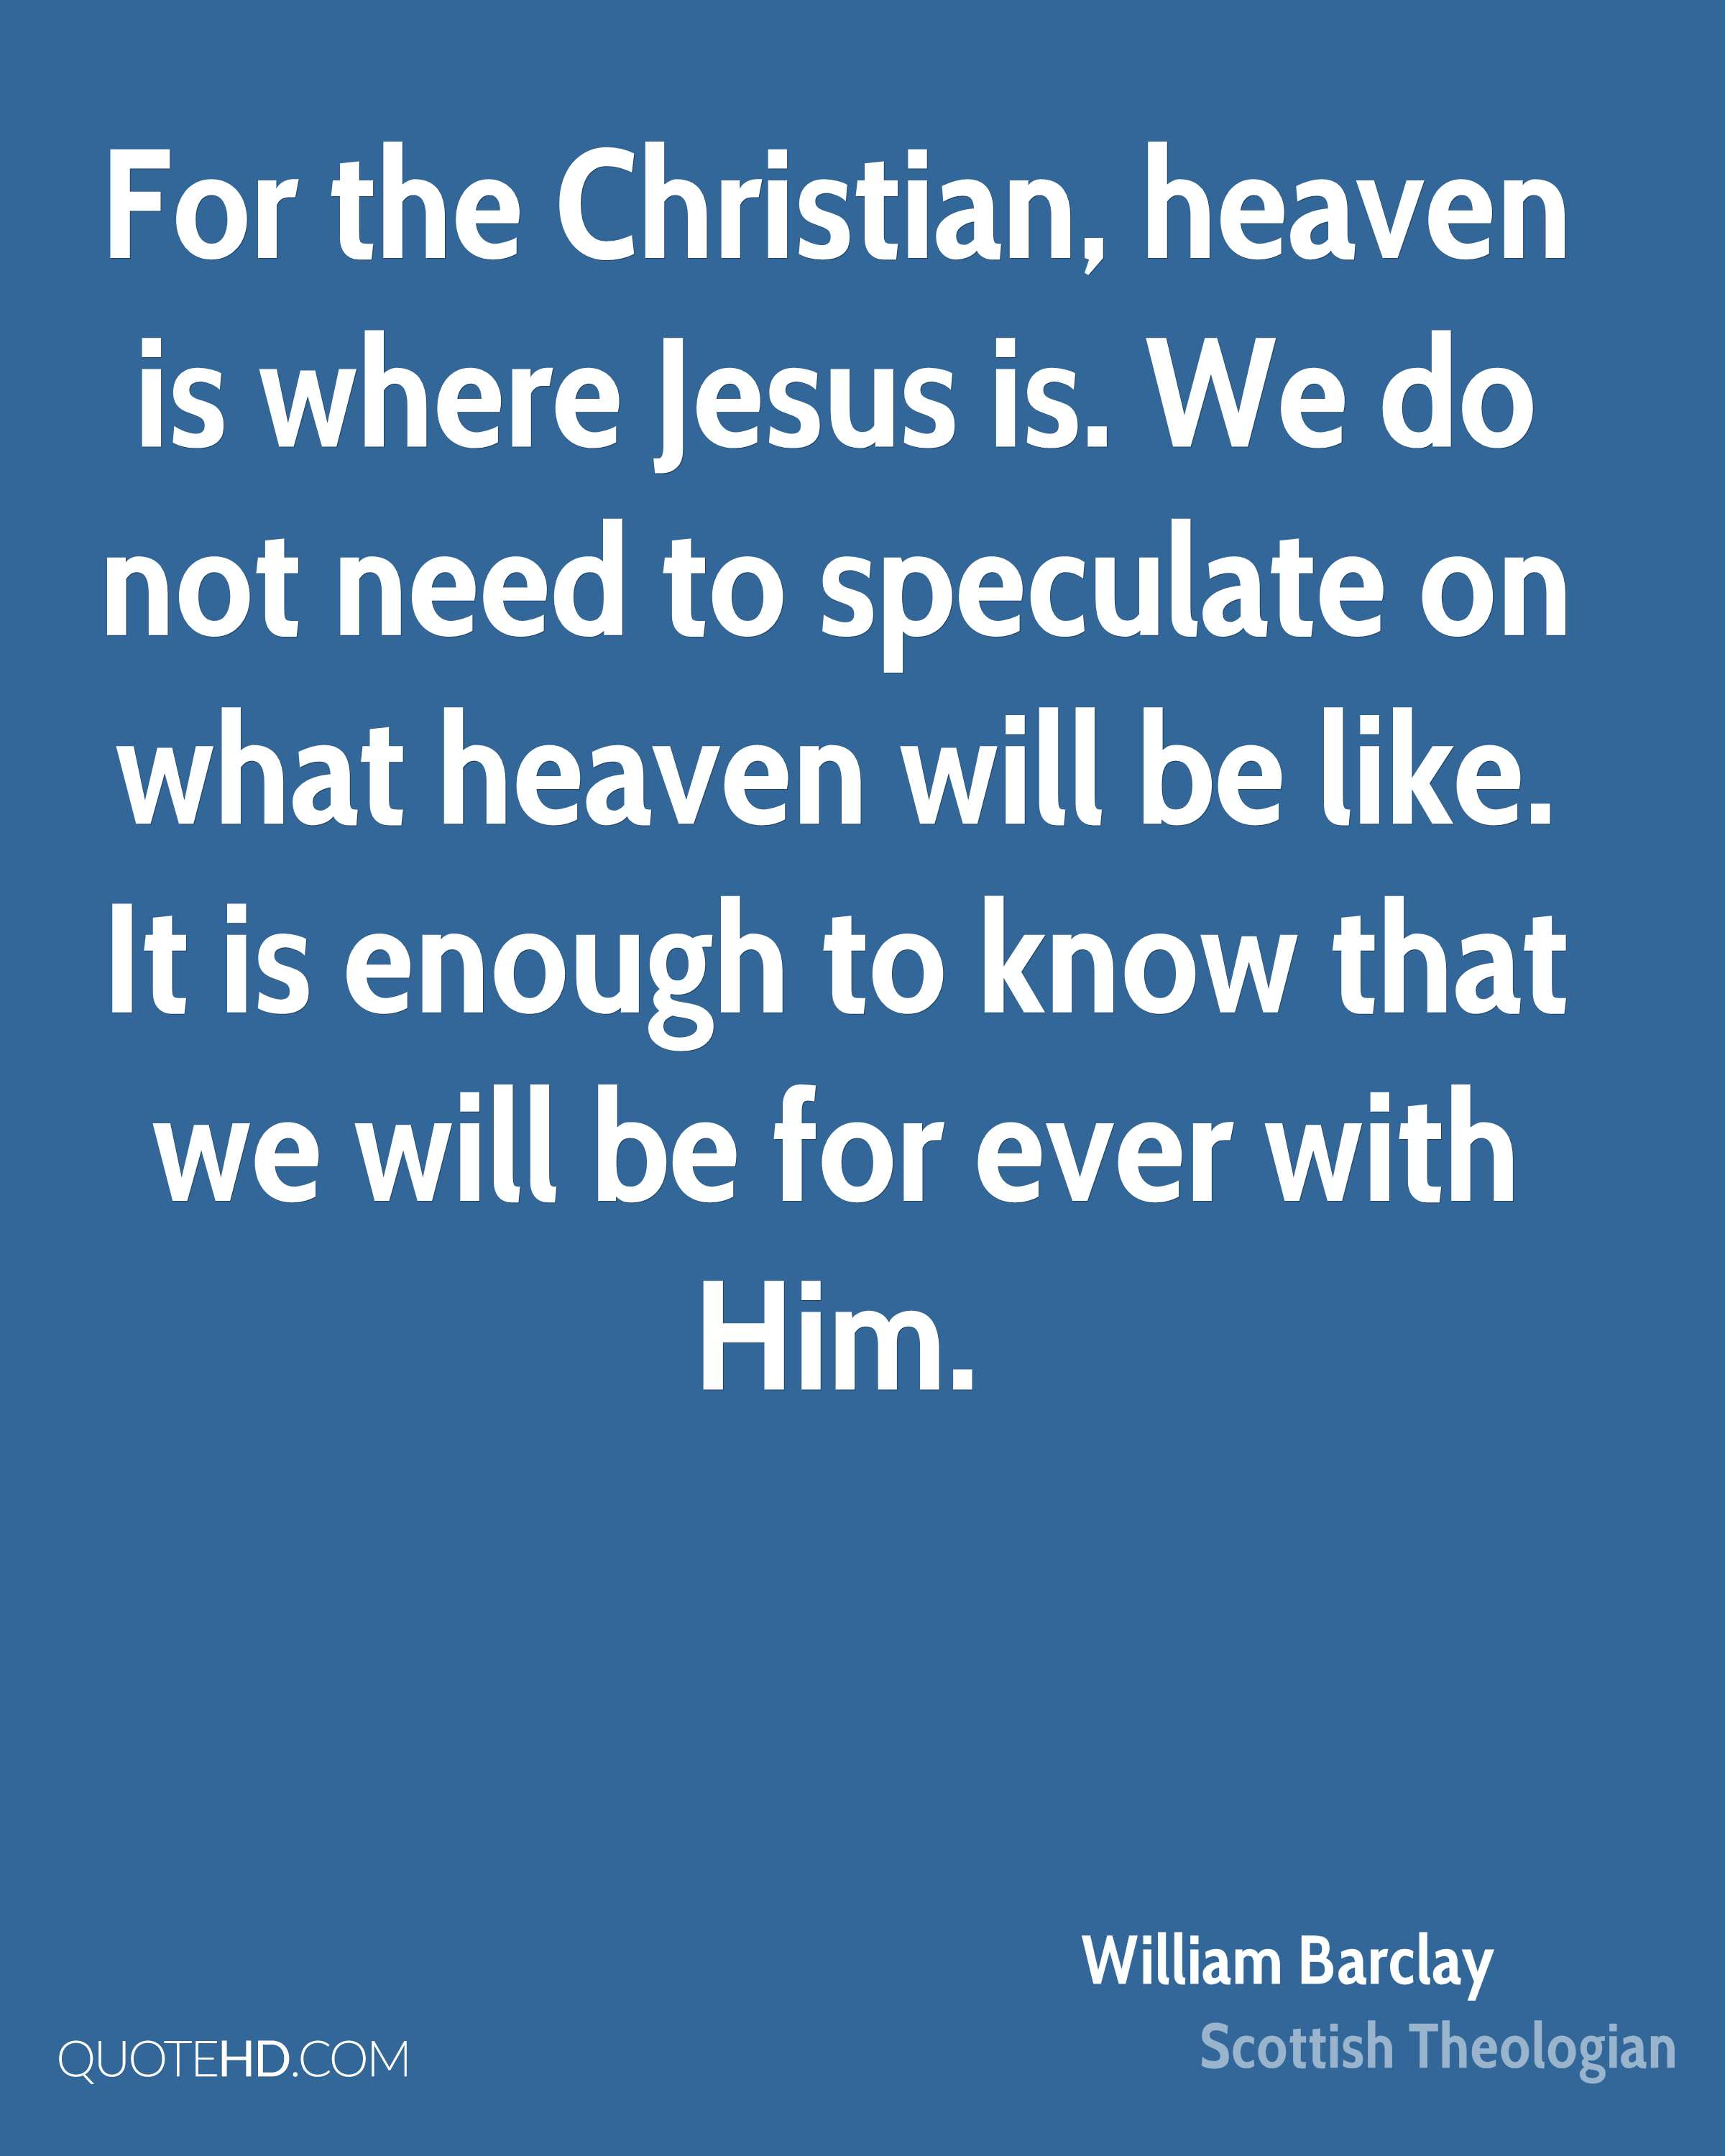 For the Christian, heaven is where Jesus is. We do not need to speculate on what heaven will be like. It is enough to know that we will be for ever with Him.